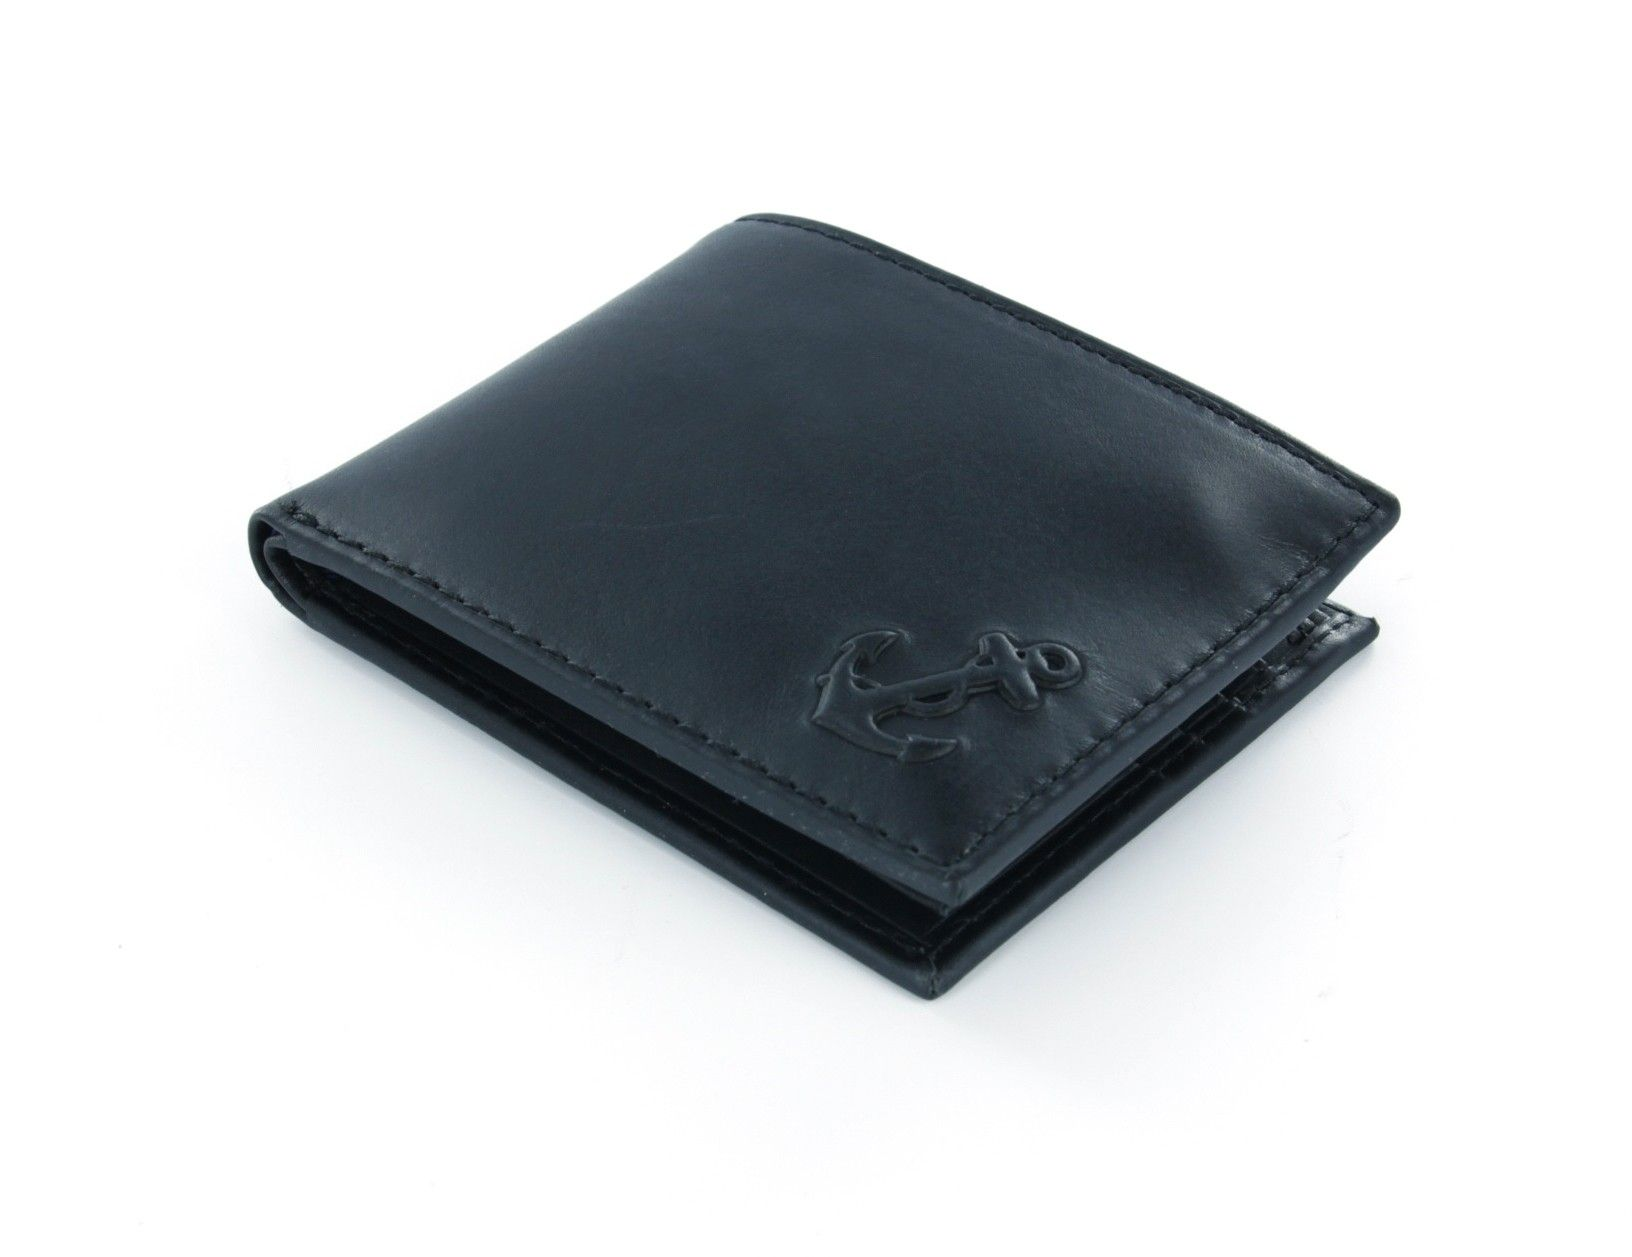 27 60 Nautica Black Leather Passcase Wallet With Anchor Emblem With Flip Id Window Nautica Menswallets Fathersdaygifts Wallet Black Leather Wallet Men